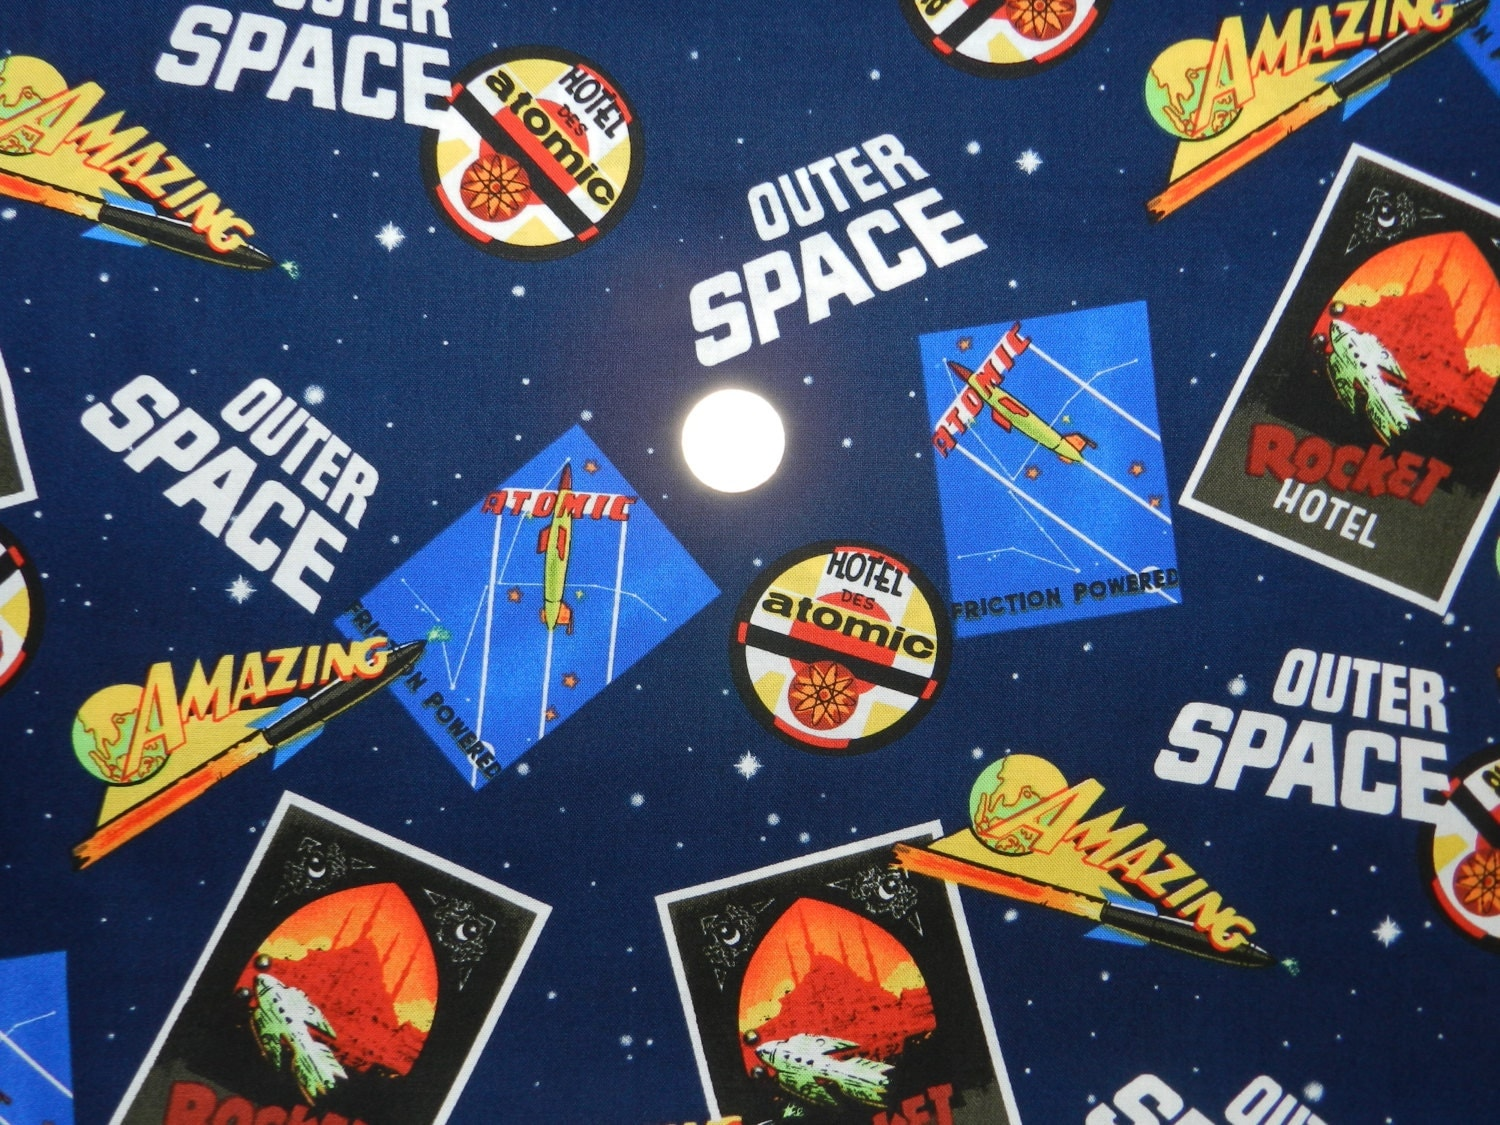 Outer space movie posters fabric by the yard from for Outer space studios